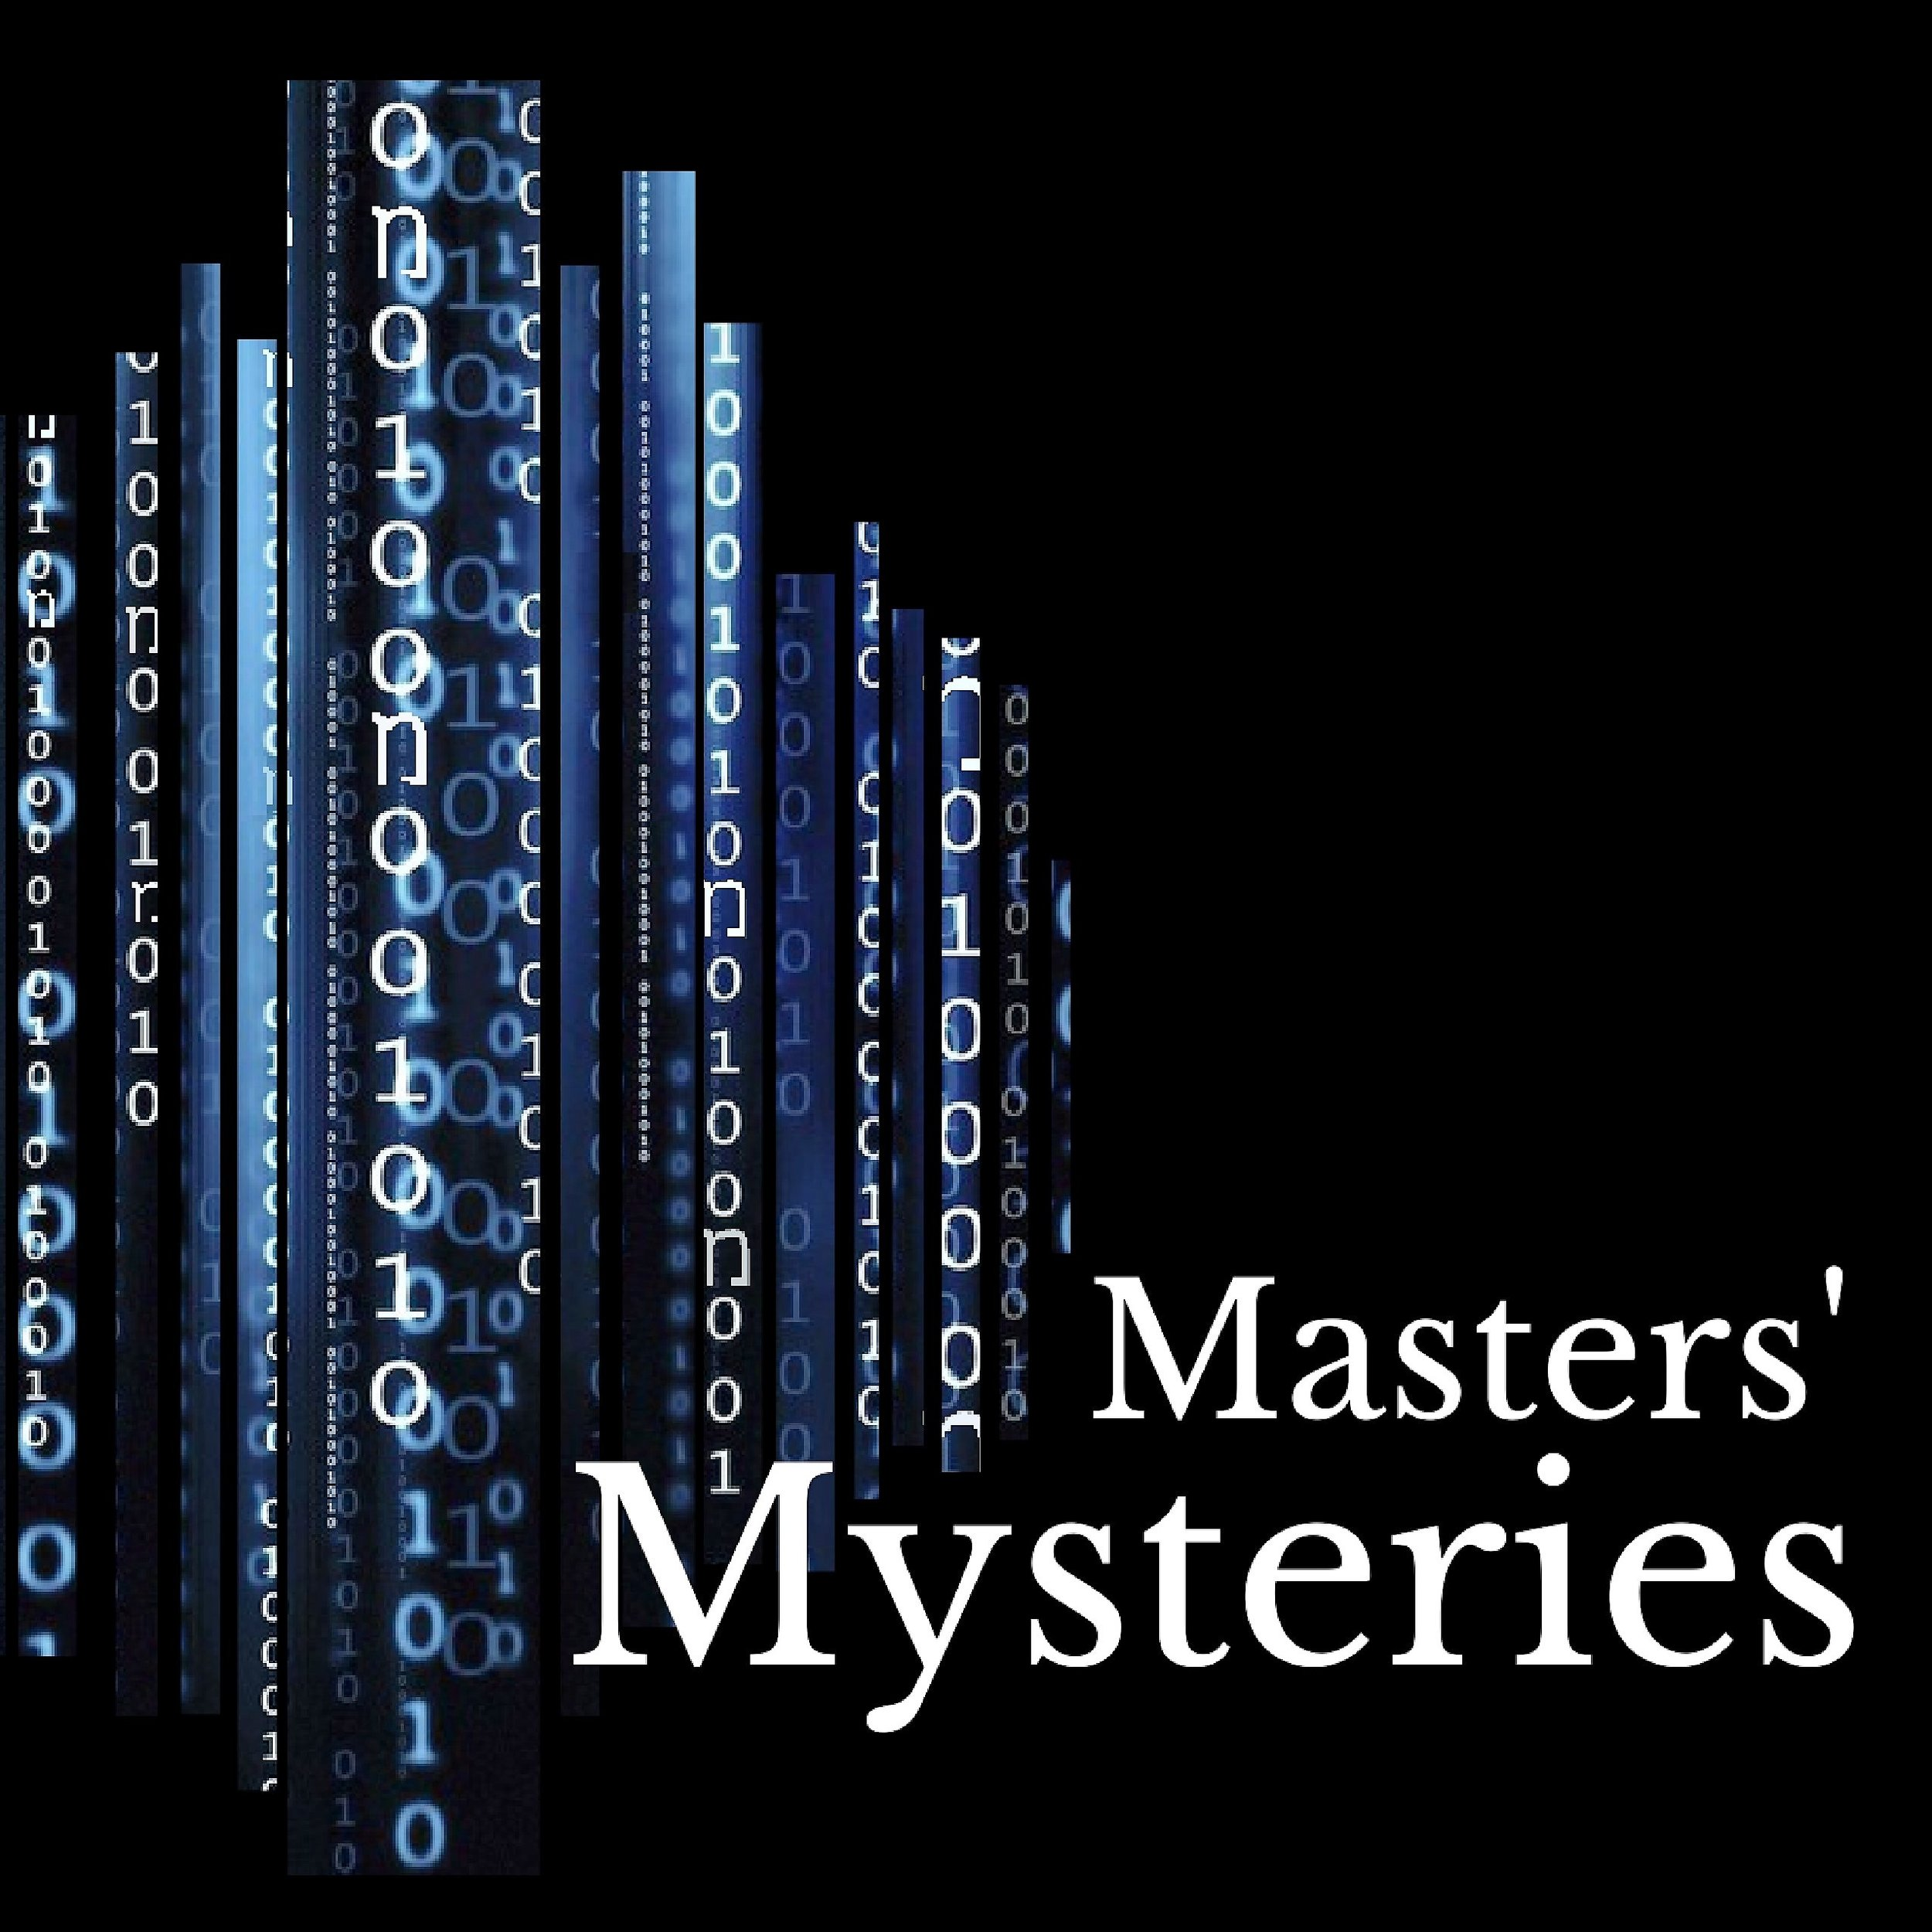 Masters' Mysteries - with Lindi Masters